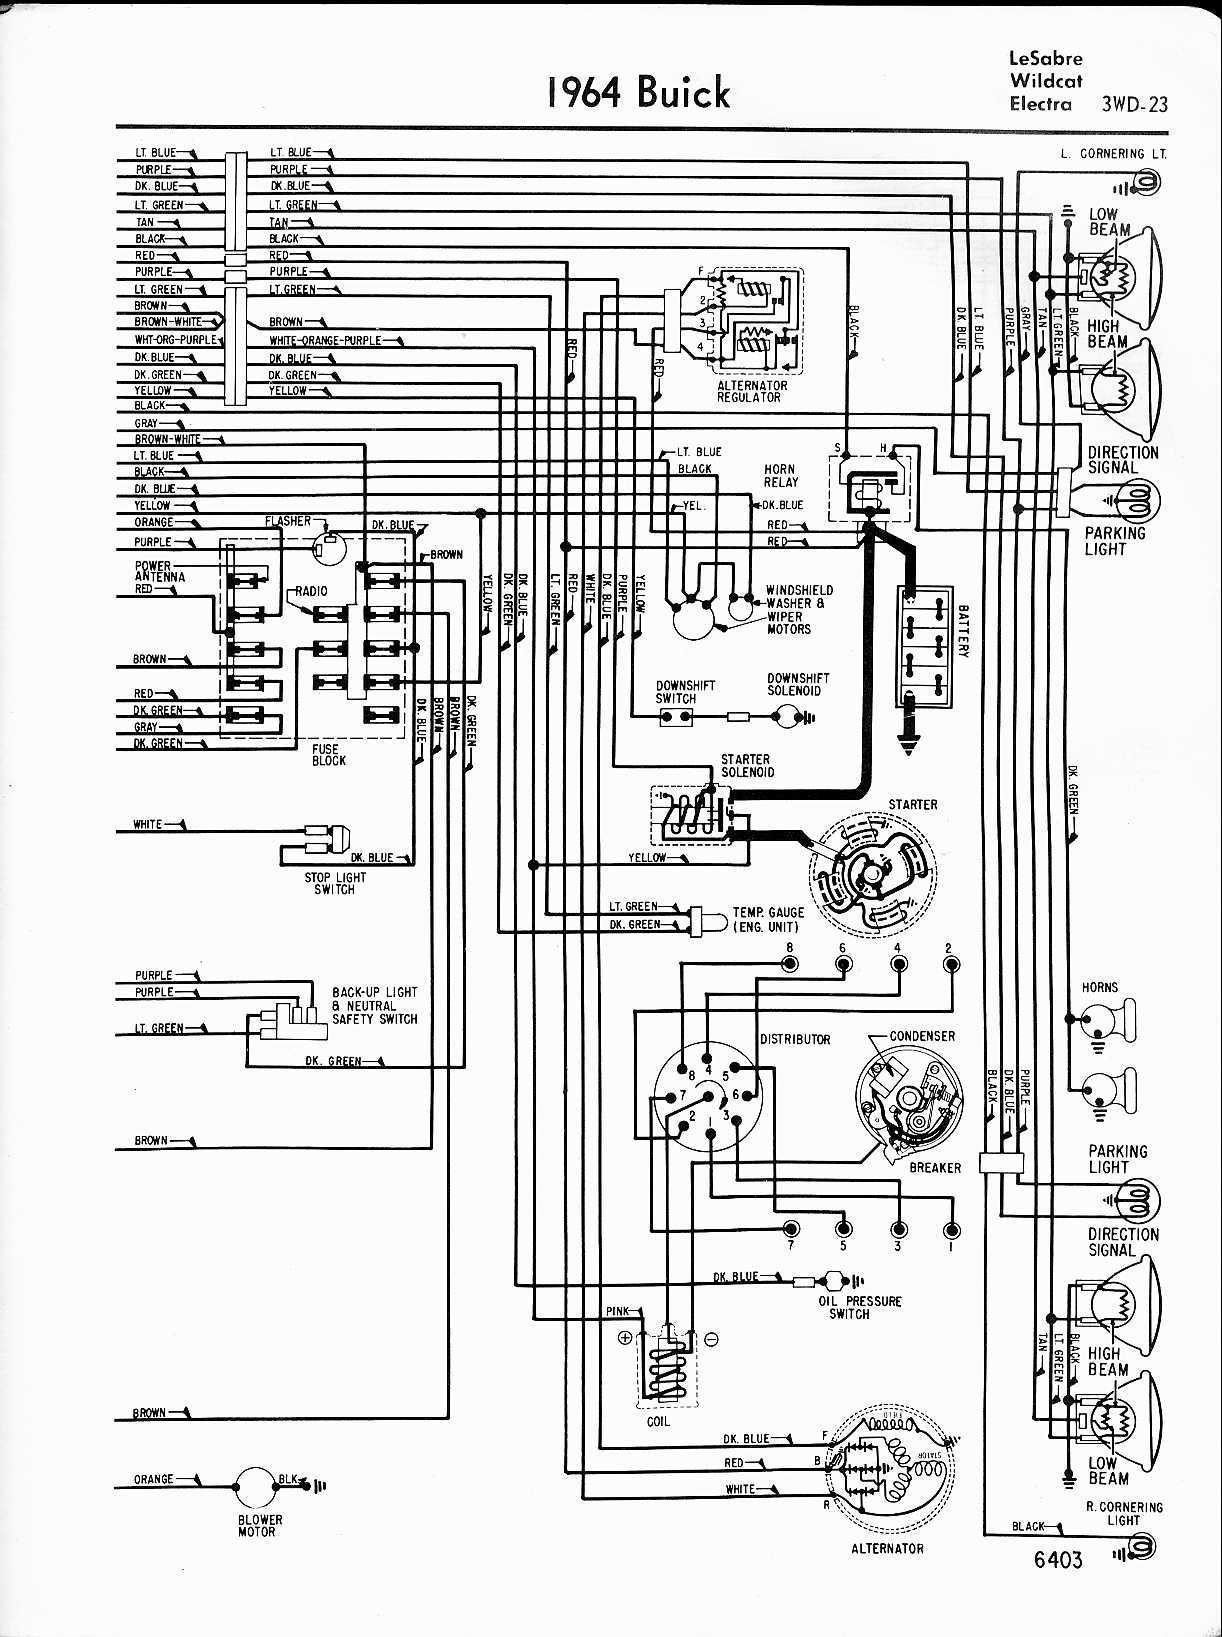 2006 buick rainier engine diagram worksheet and wiring diagram u2022 rh  bookinc co Chevrolet TrailBlazer Wiring-Diagram 2004 GMC Envoy Wiring- Diagram